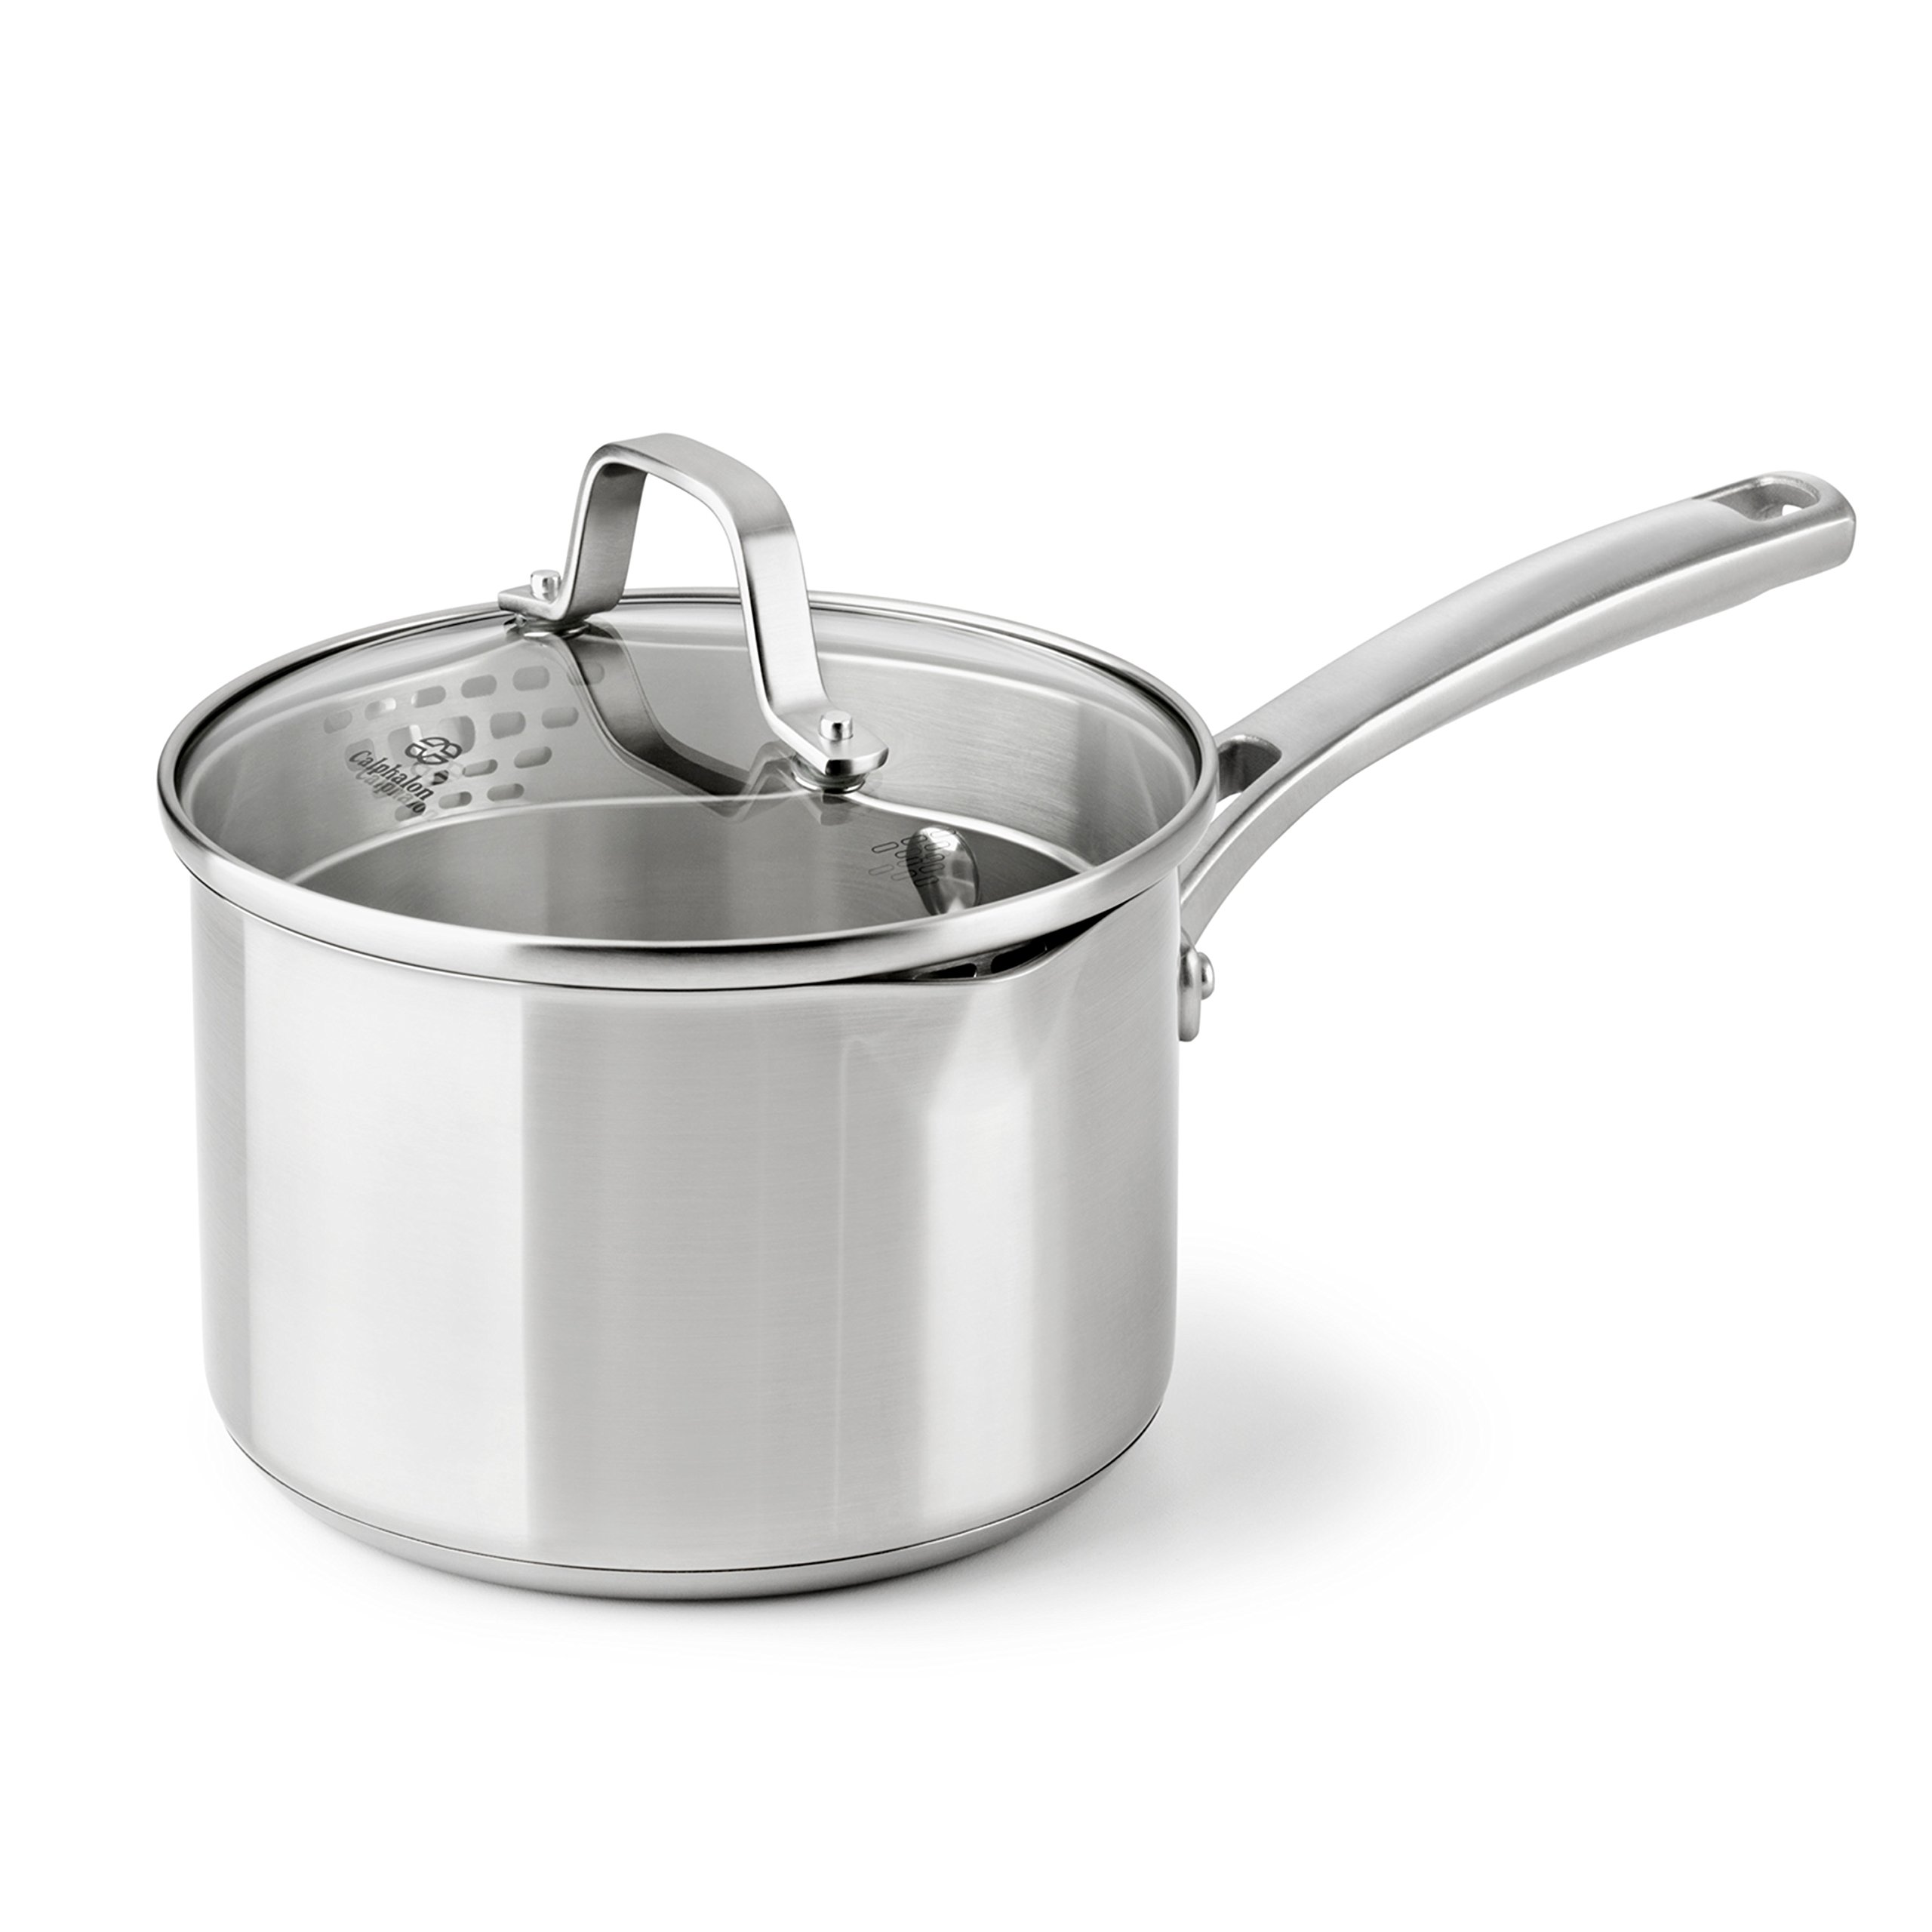 Calphalon Classic Stainless Steel Cookware, Sauce Pan, 2 1/2-quart by Calphalon